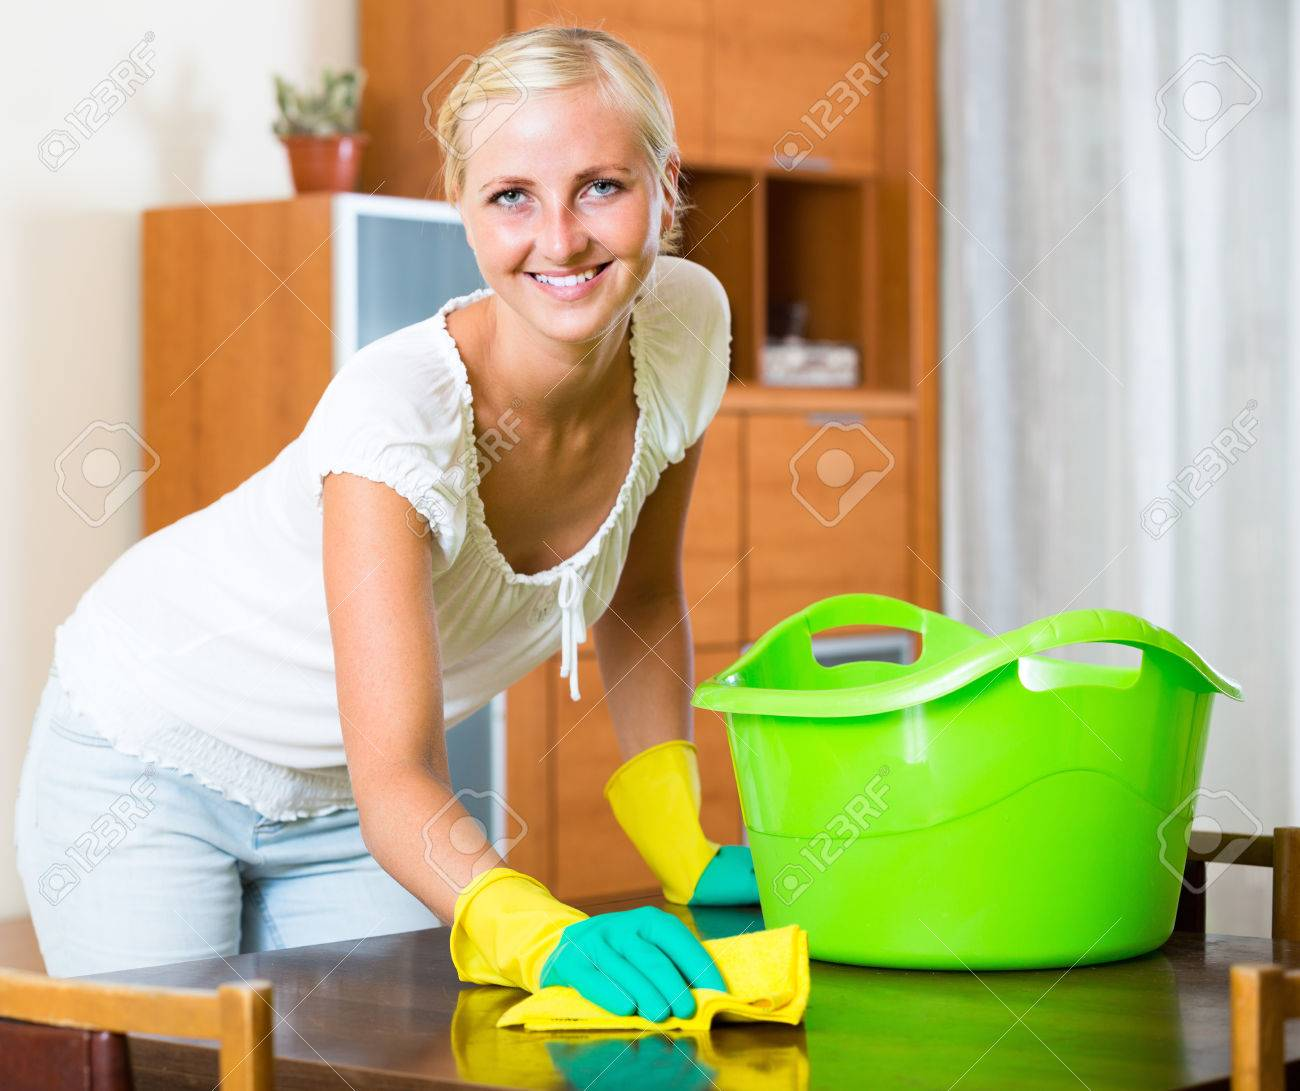 dusting furniture. Cheerful Girl In Rubber Gloves Dusting Furniture Living Room And Smiling Stock Photo - 47212933